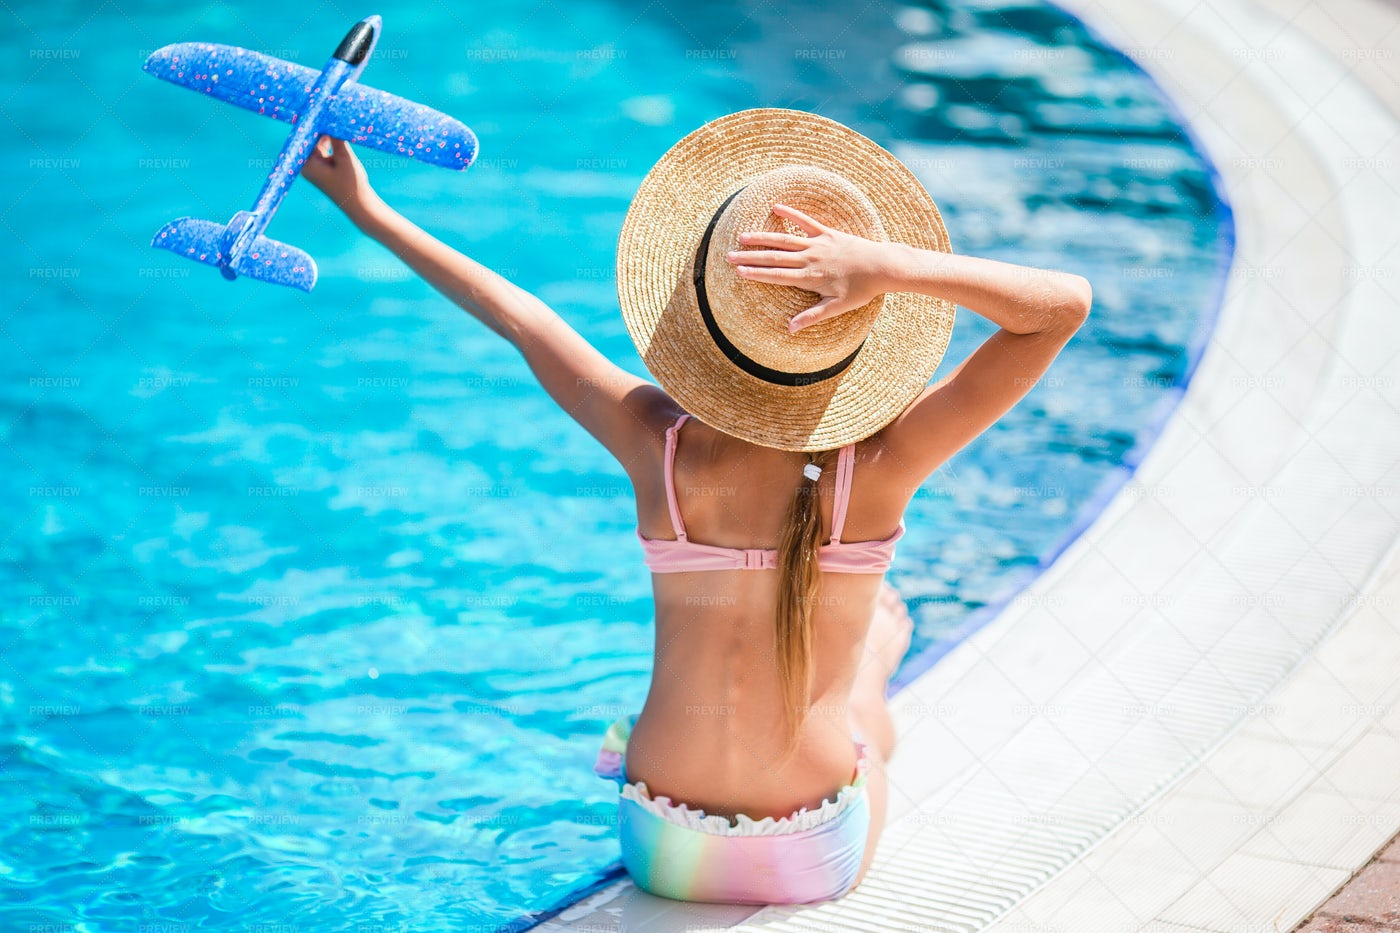 Playing Near The Pool: Stock Photos